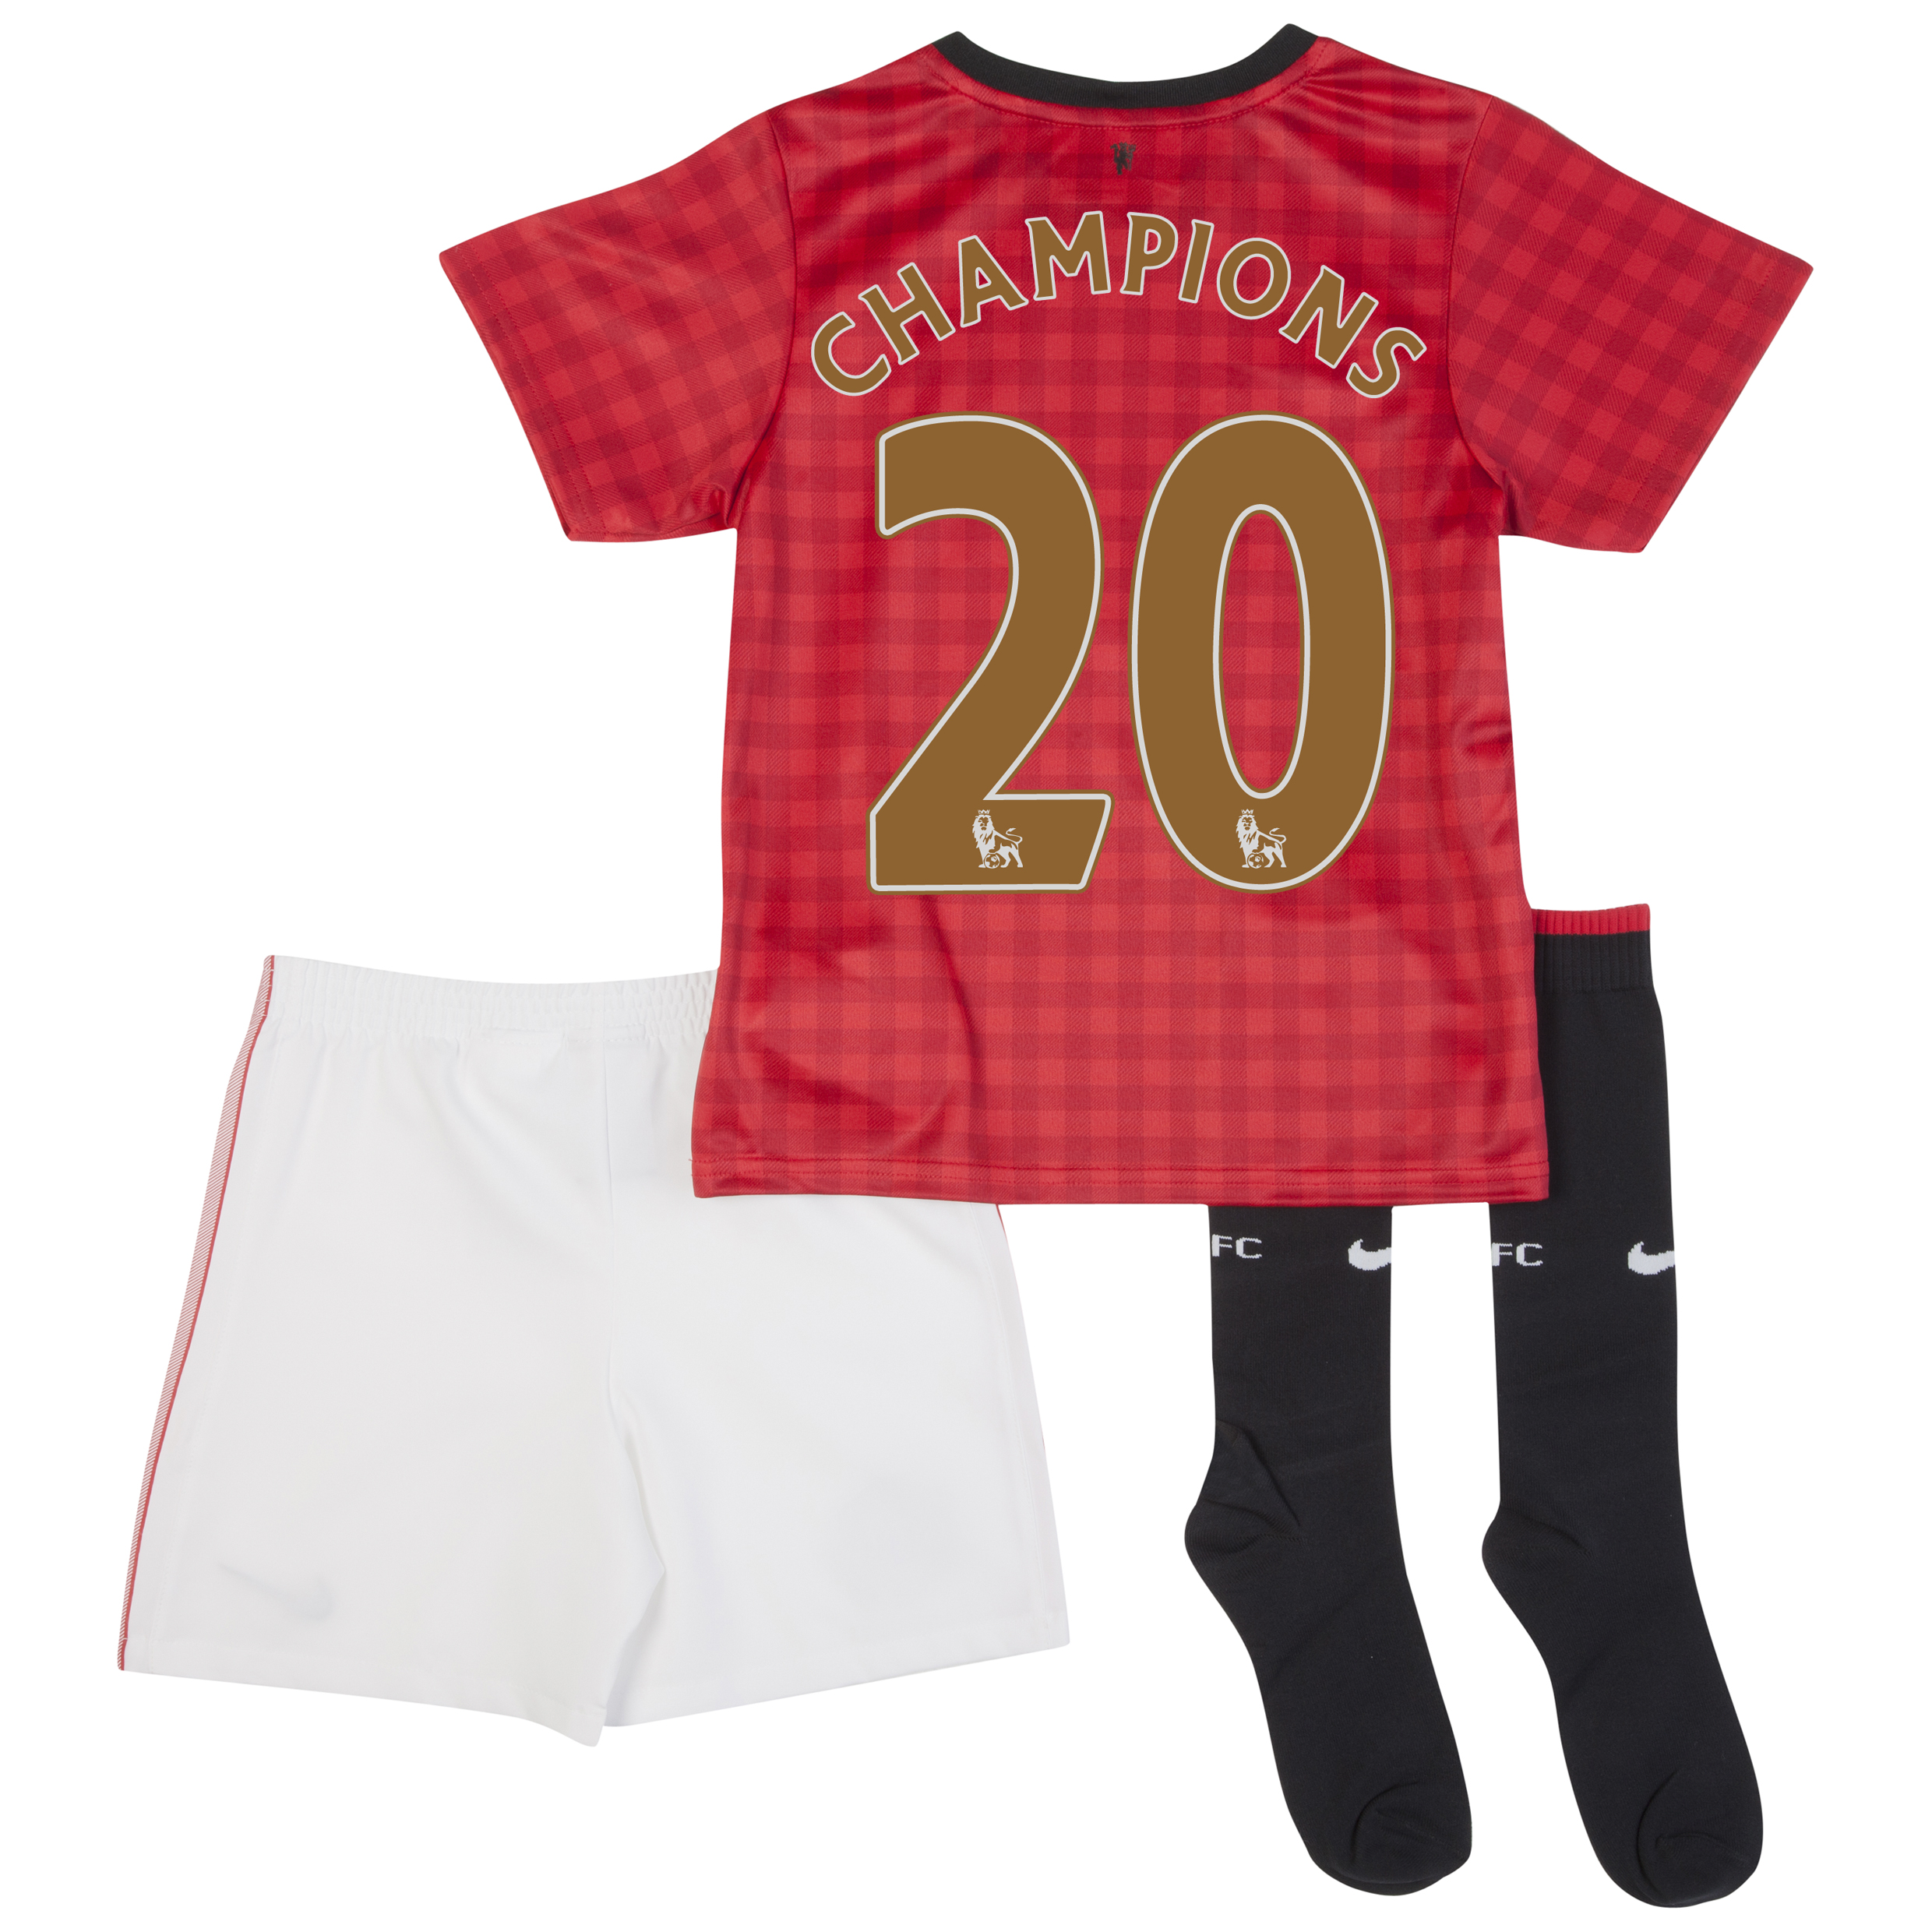 Manchester United Home Kit 2012/13 -  Little Boys with Champions 20 printing